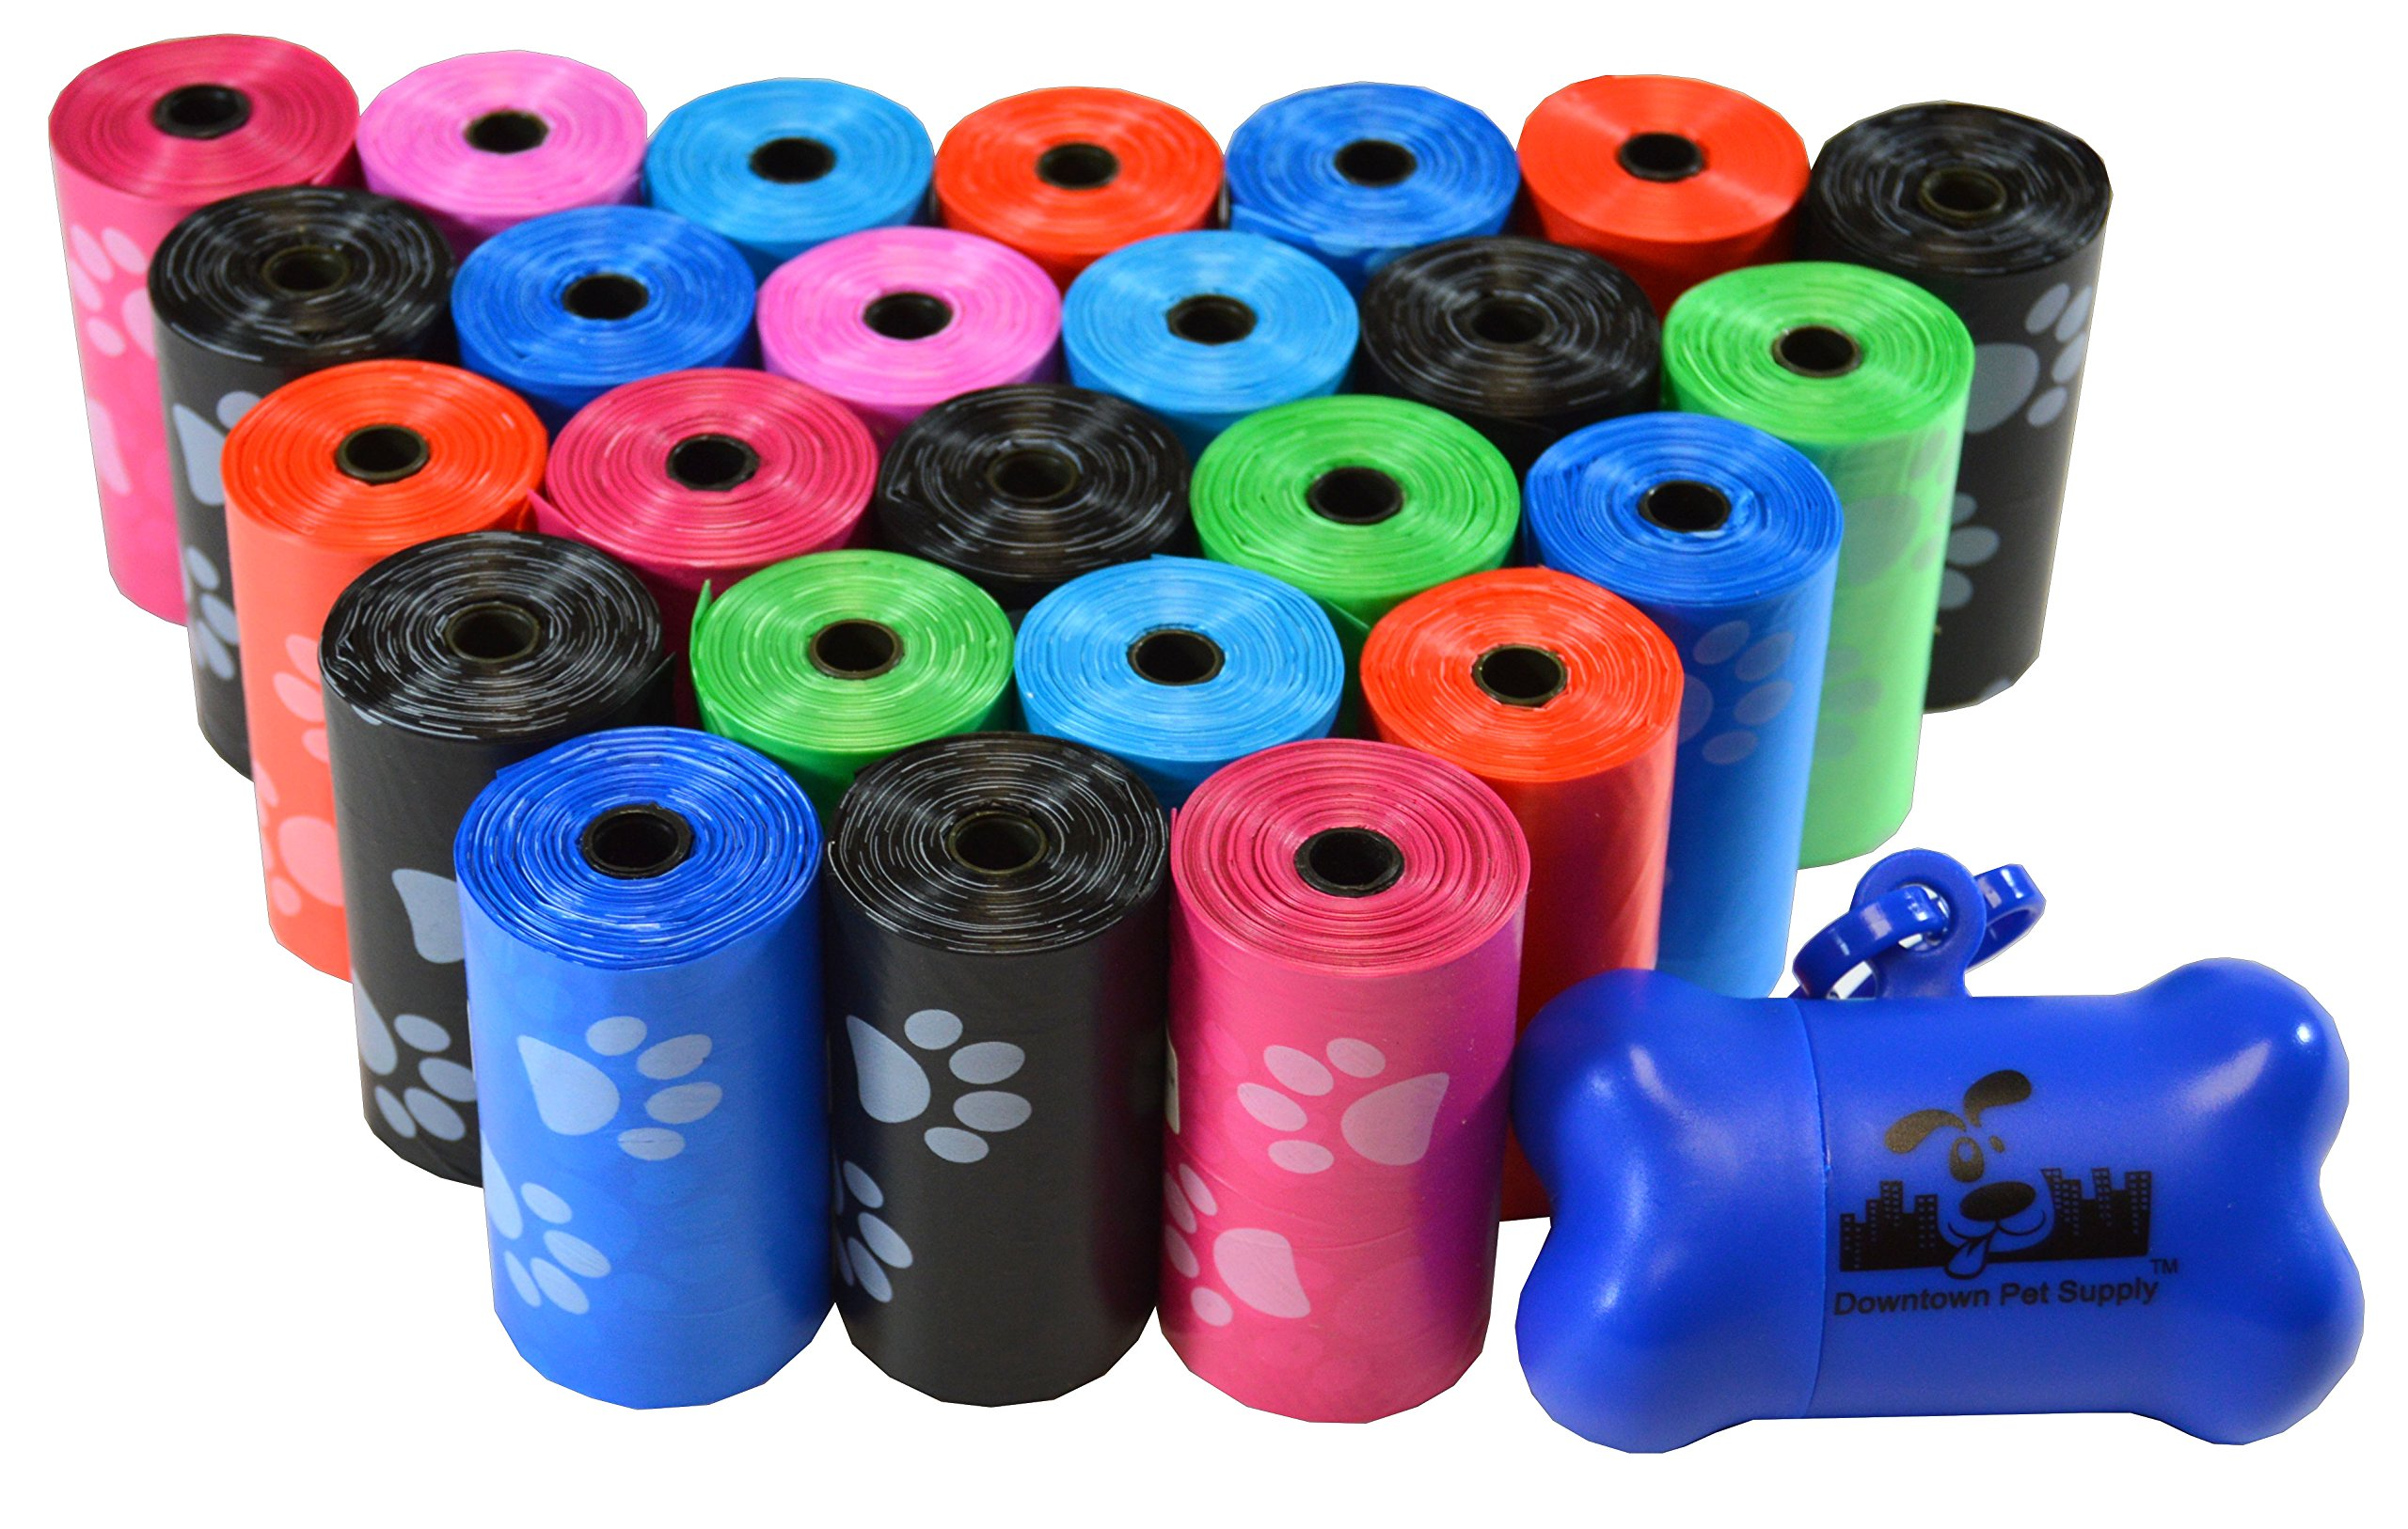 500 Pet Waste Bags, Dog Waste Bags, Bulk Poop Bags with Leash Clip and Bone Bag Dispenser - (500 Bags, Rainbow with Paw Prints) by Downtown Pet Supply